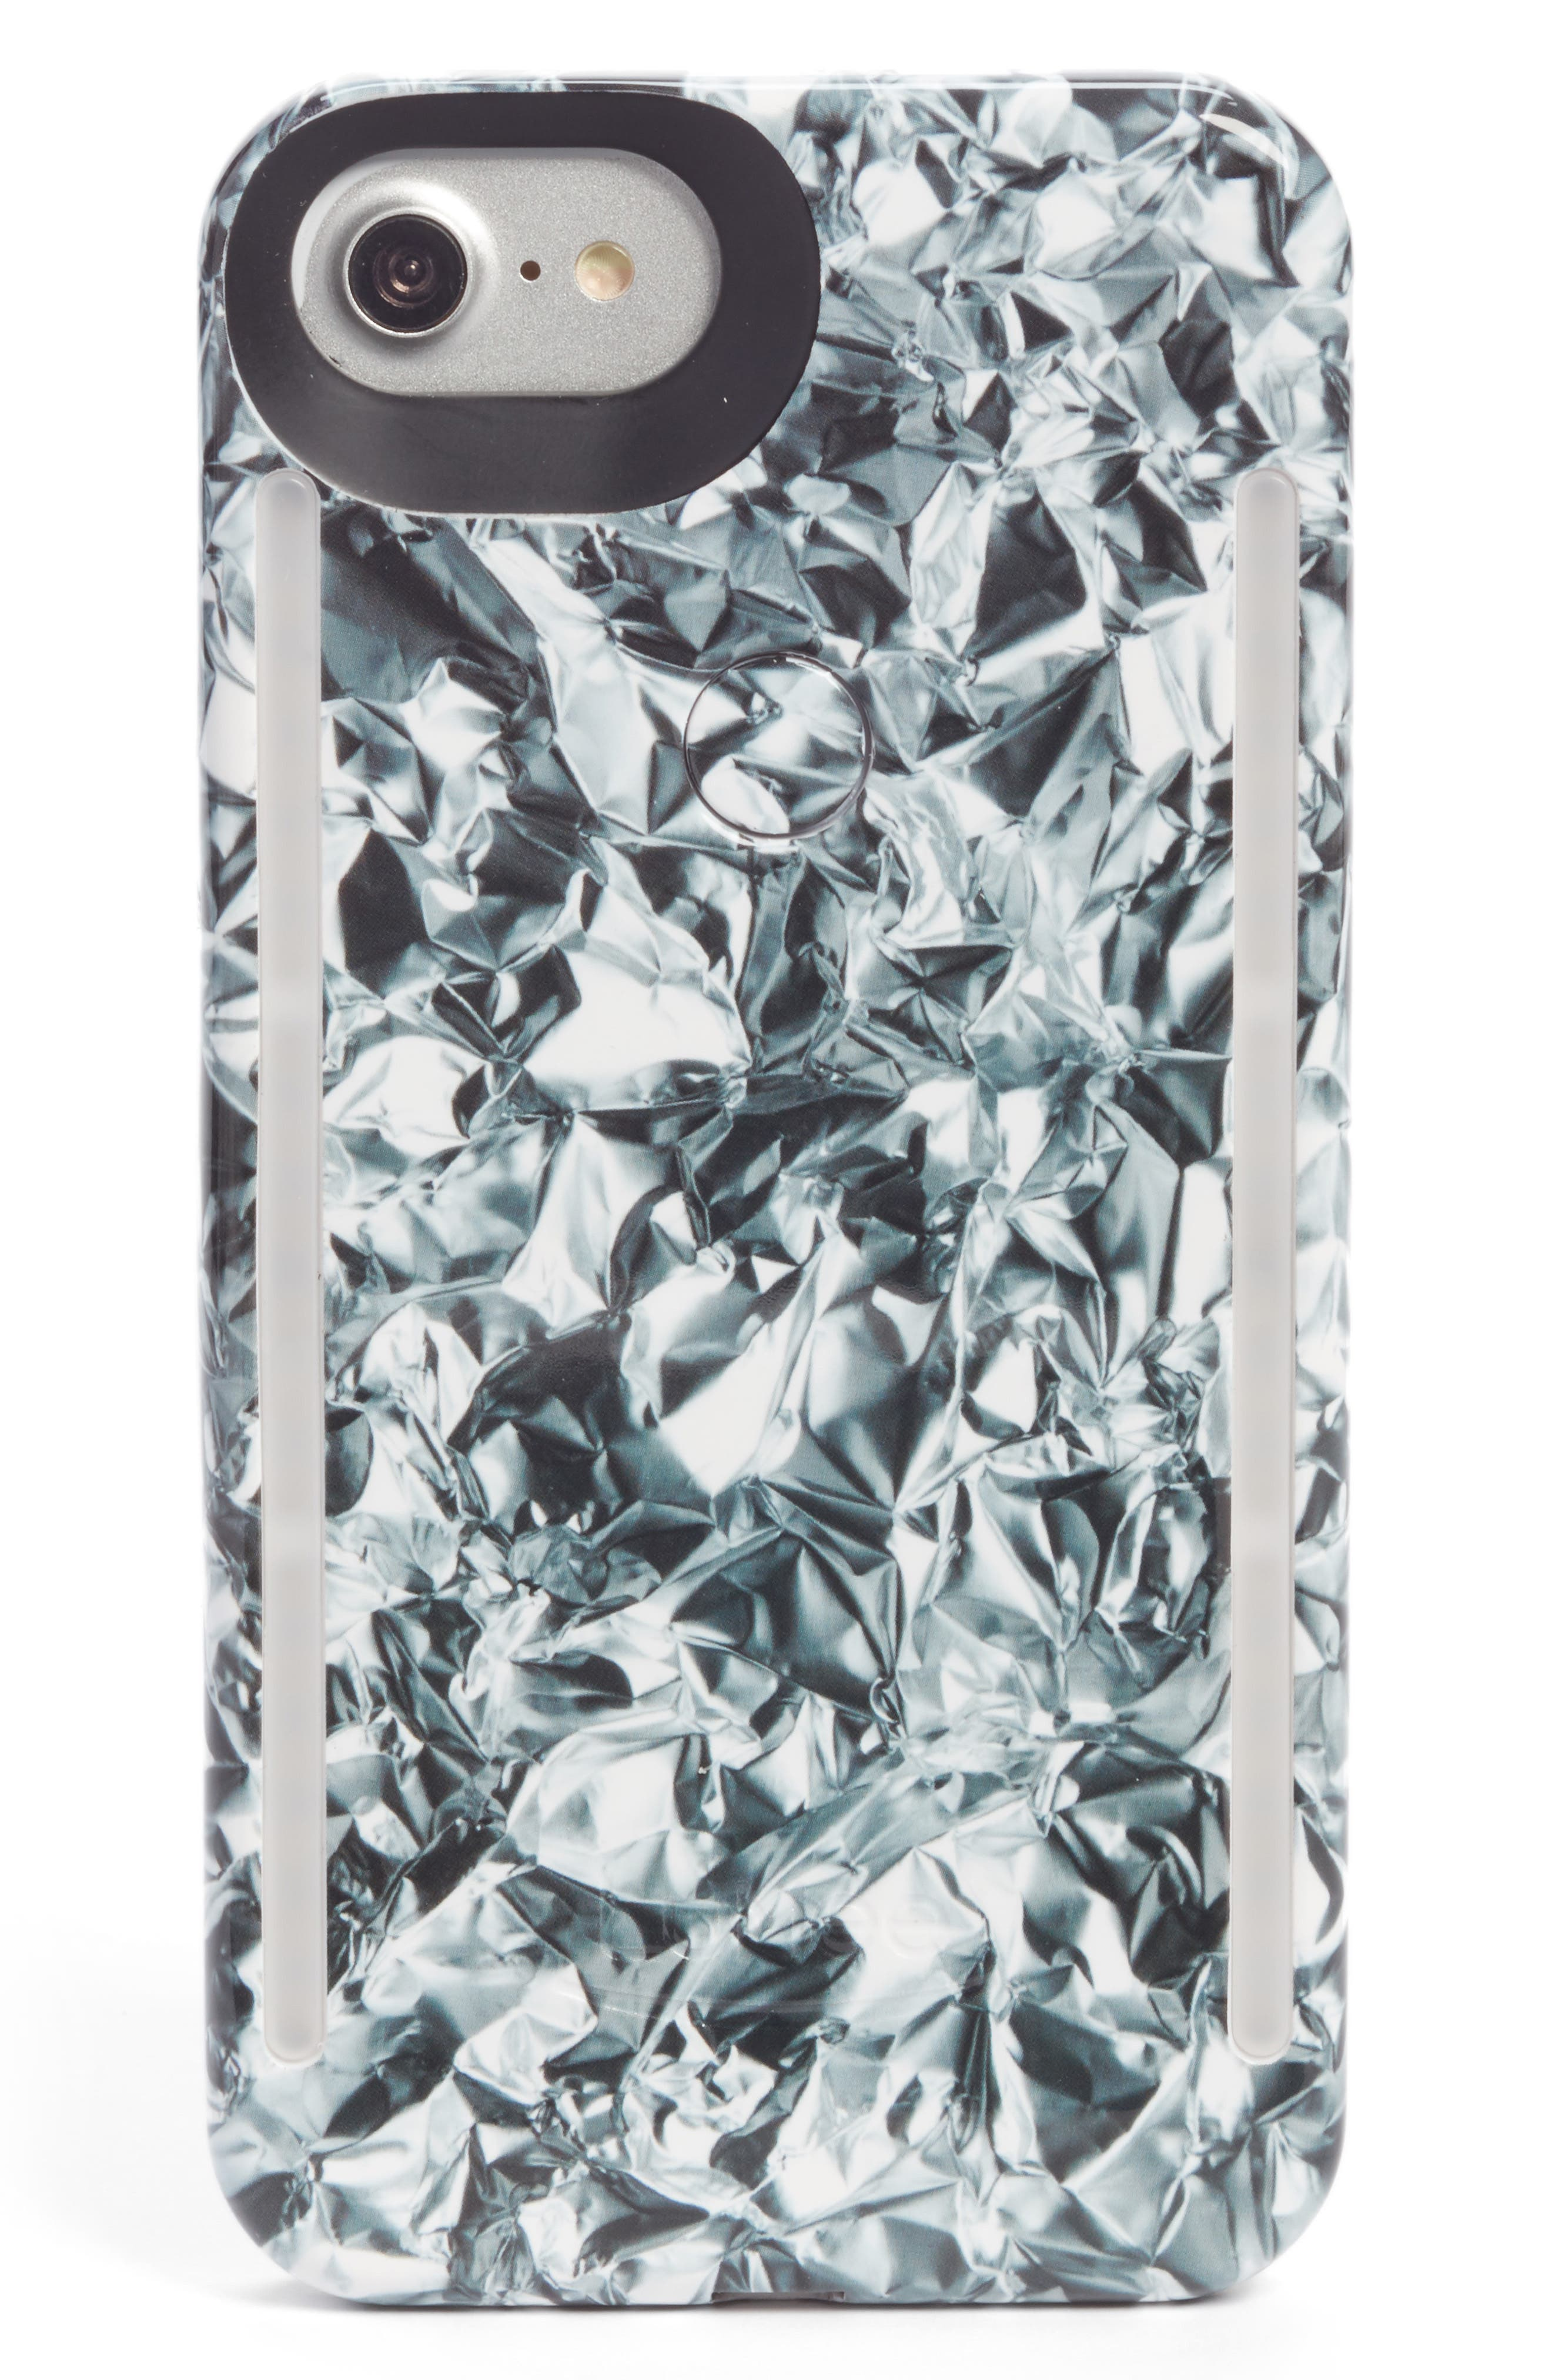 Alternate Image 1 Selected - LuMee Duo LED Lighted iPhone 6/6s/7/8 & 6/6s/7/8 Plus Case (Nordstrom Exclusive)